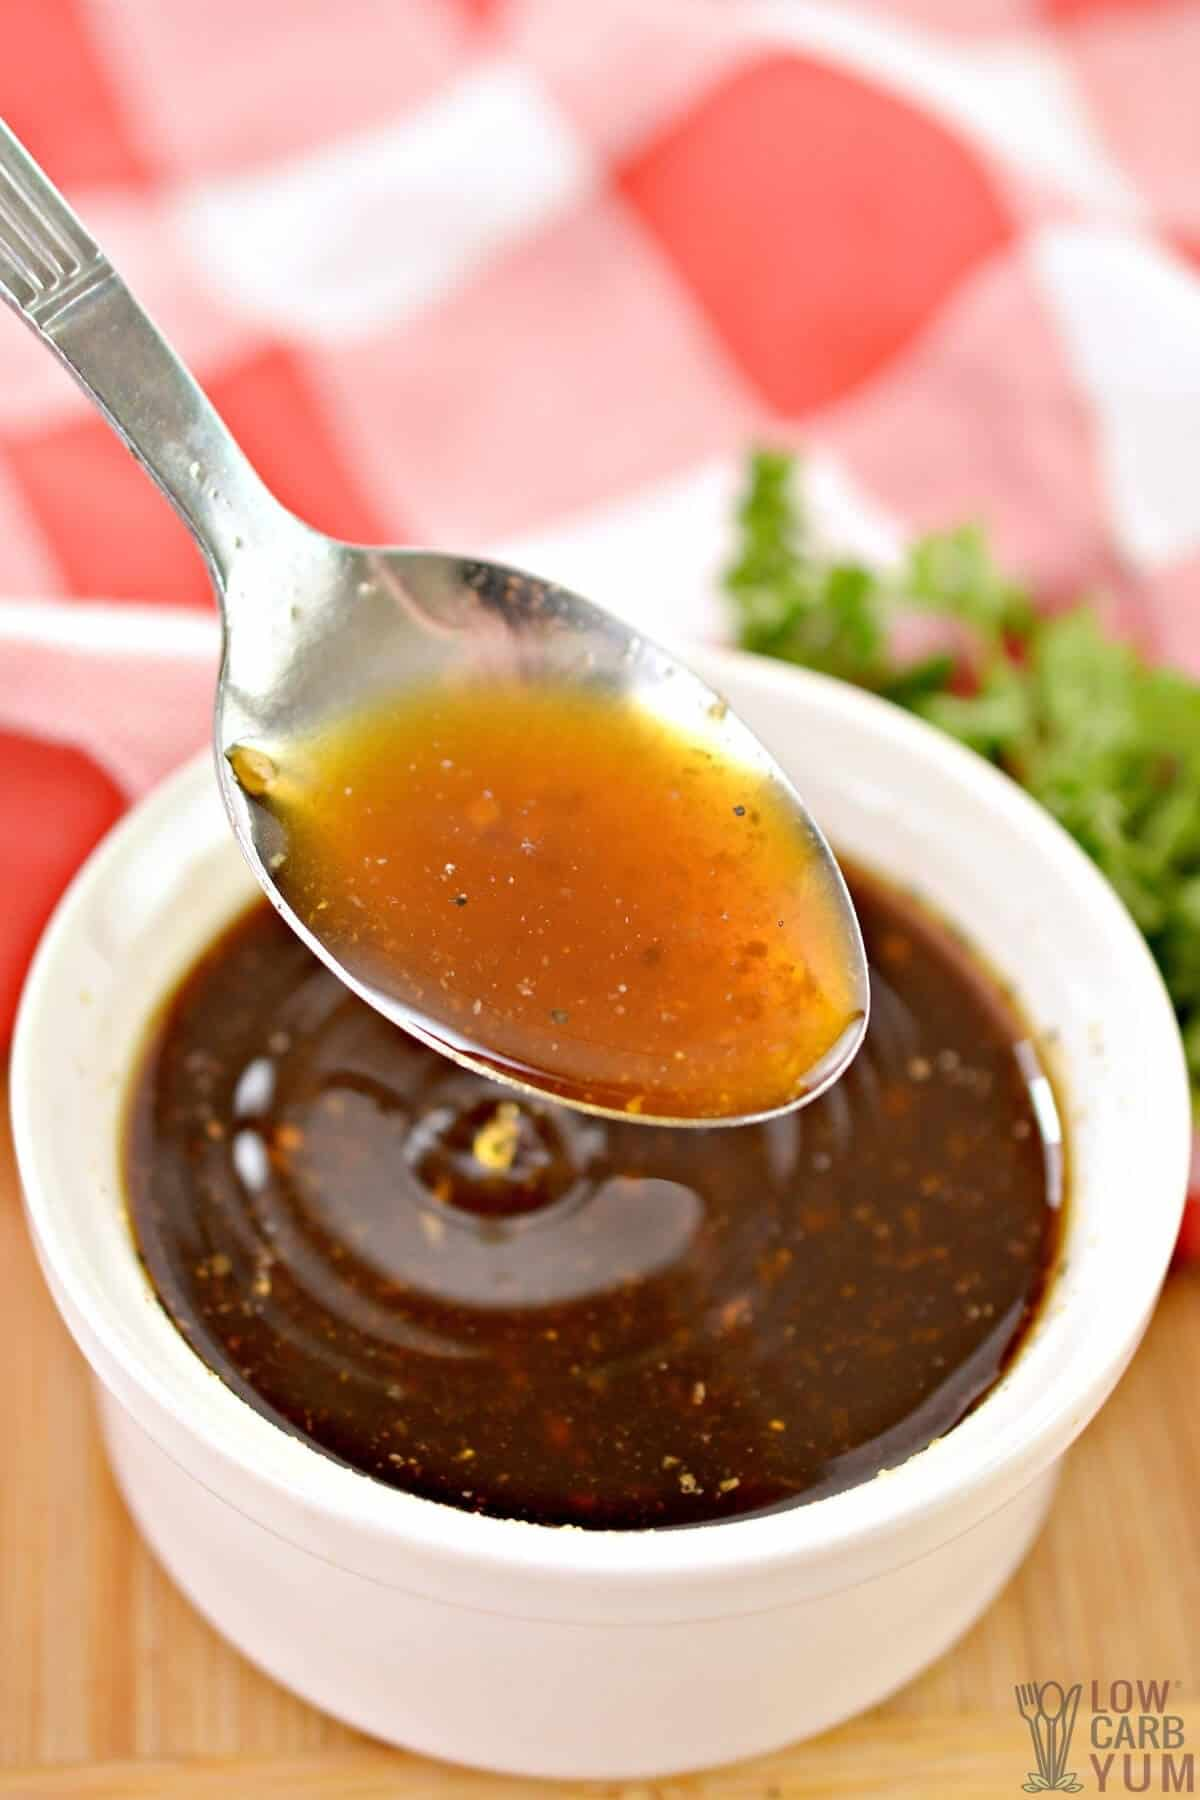 spoon of sauce over cup of whisked ingredients